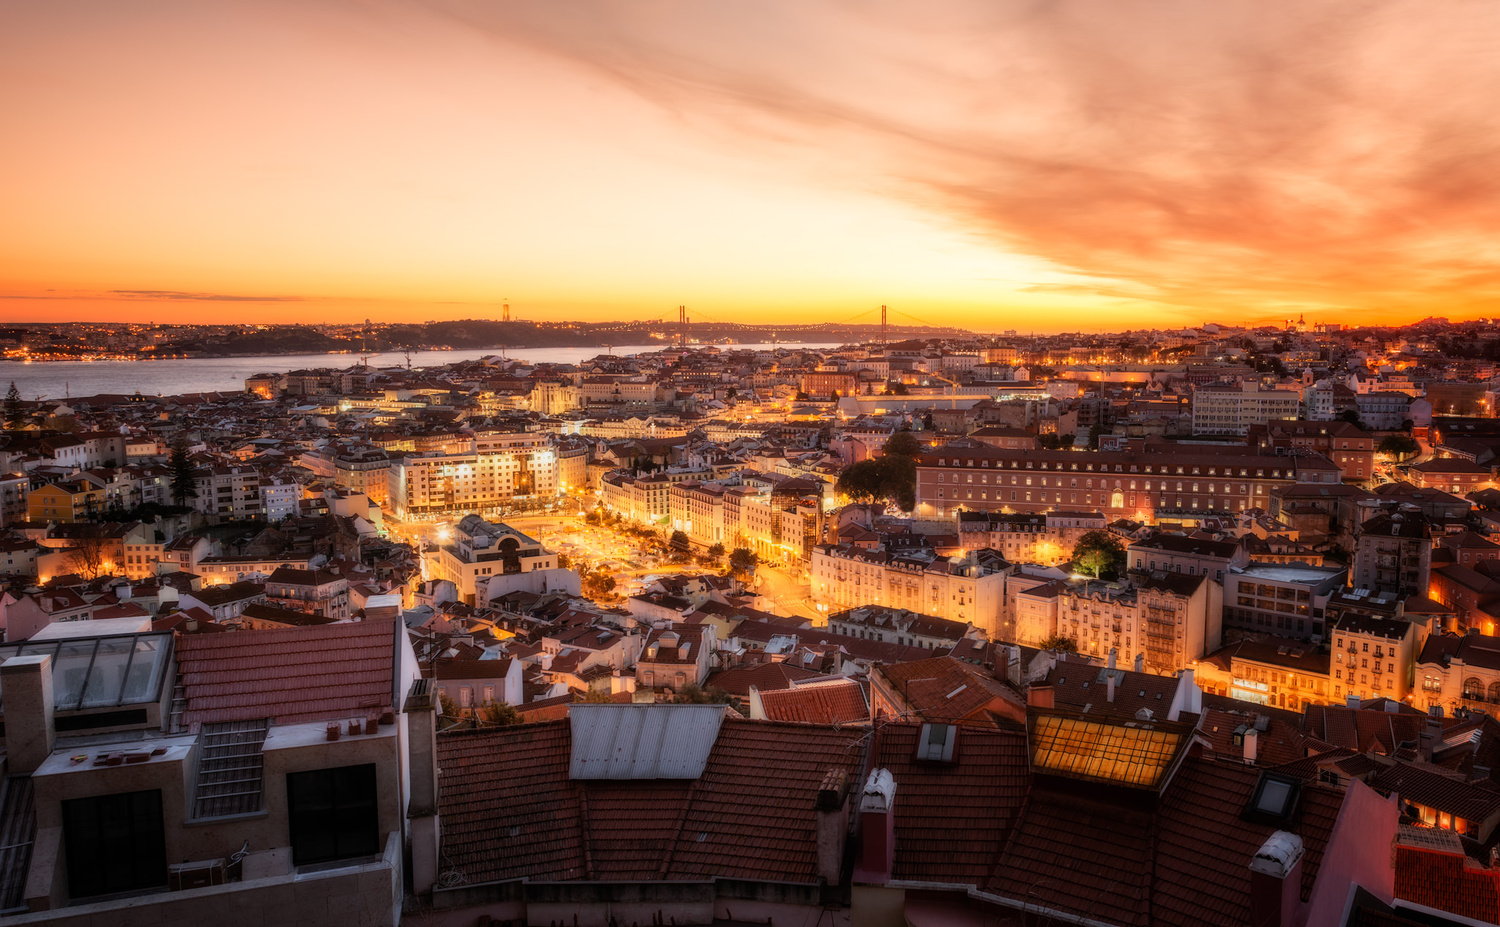 Sunset View | Lisbon, Portugal by Nico Trinkhaus